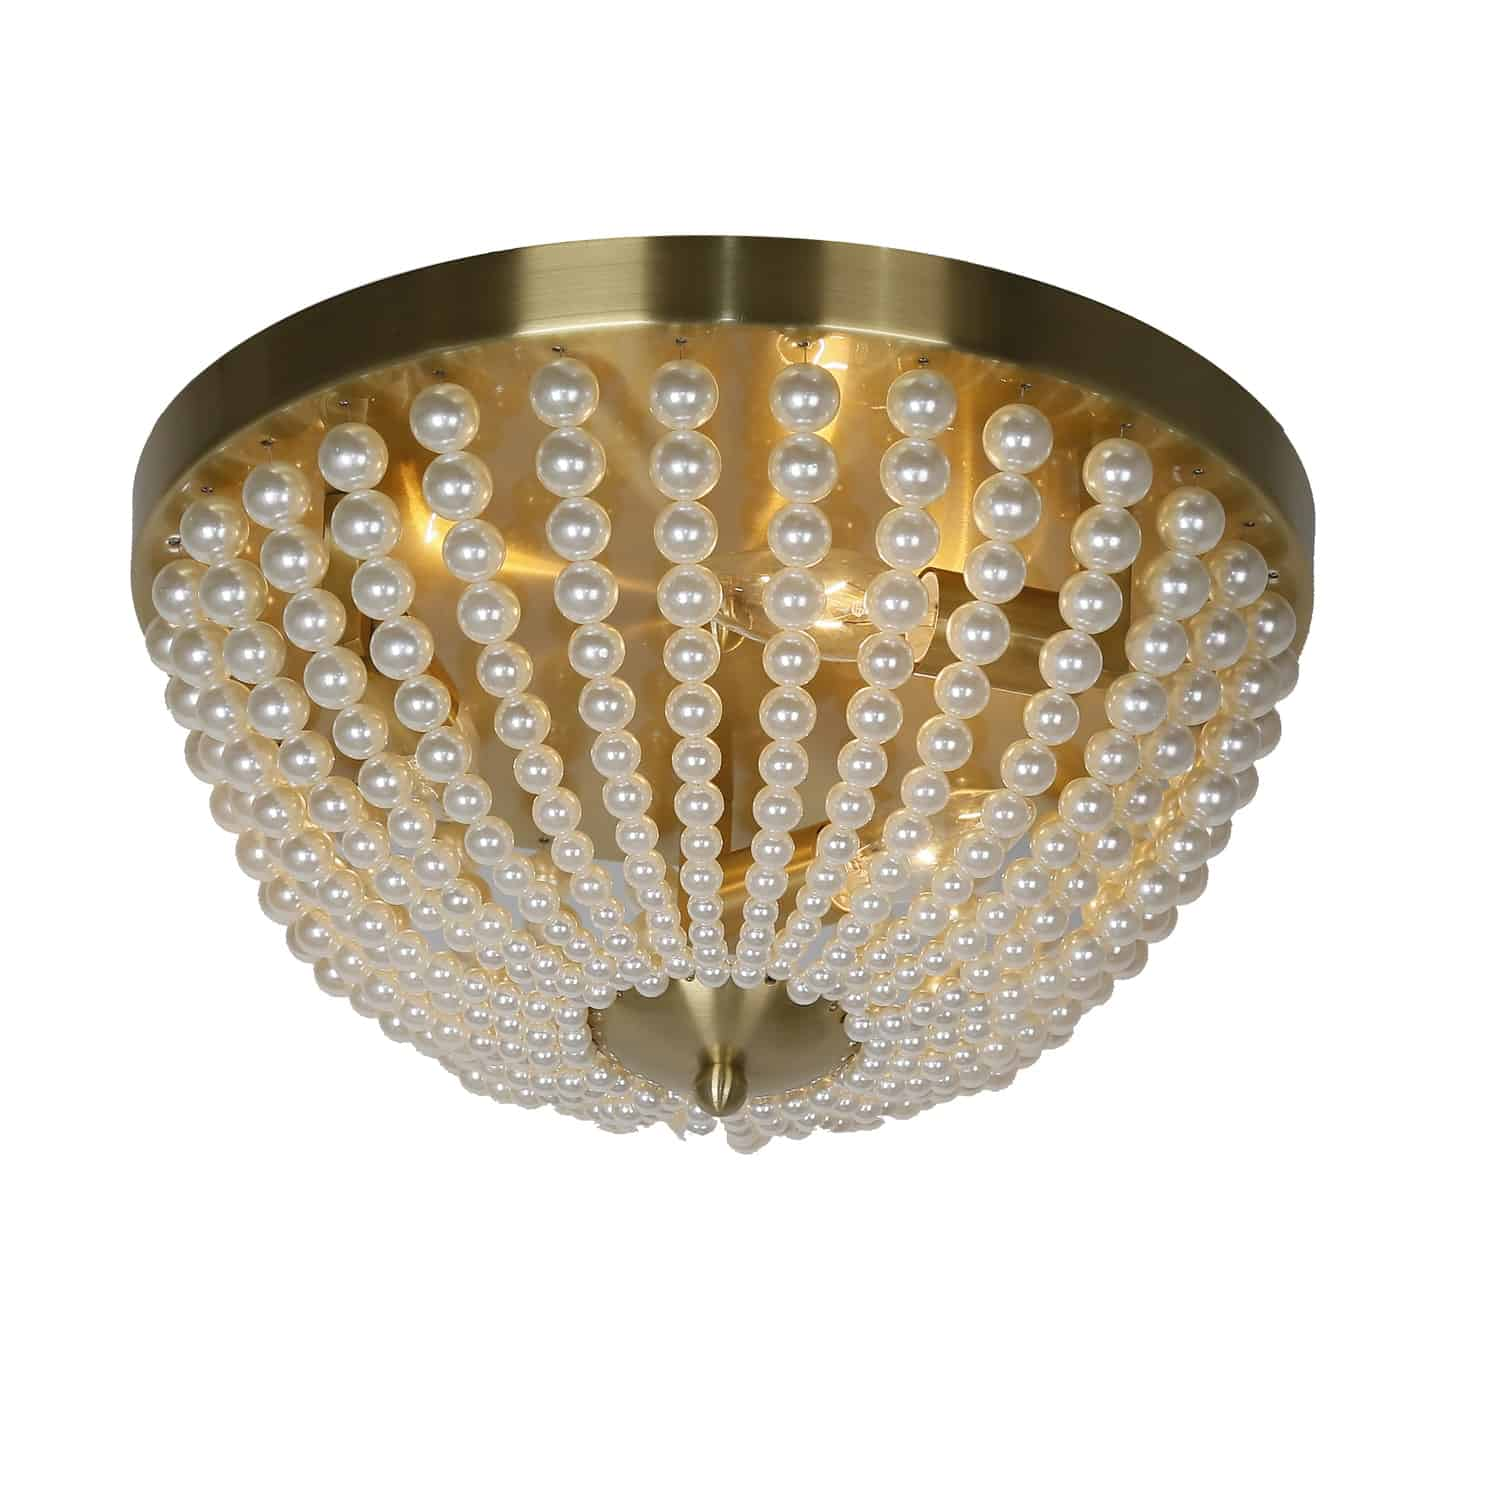 3 Light Incandescent Flush Mount Aged Brass Finish with Pearls